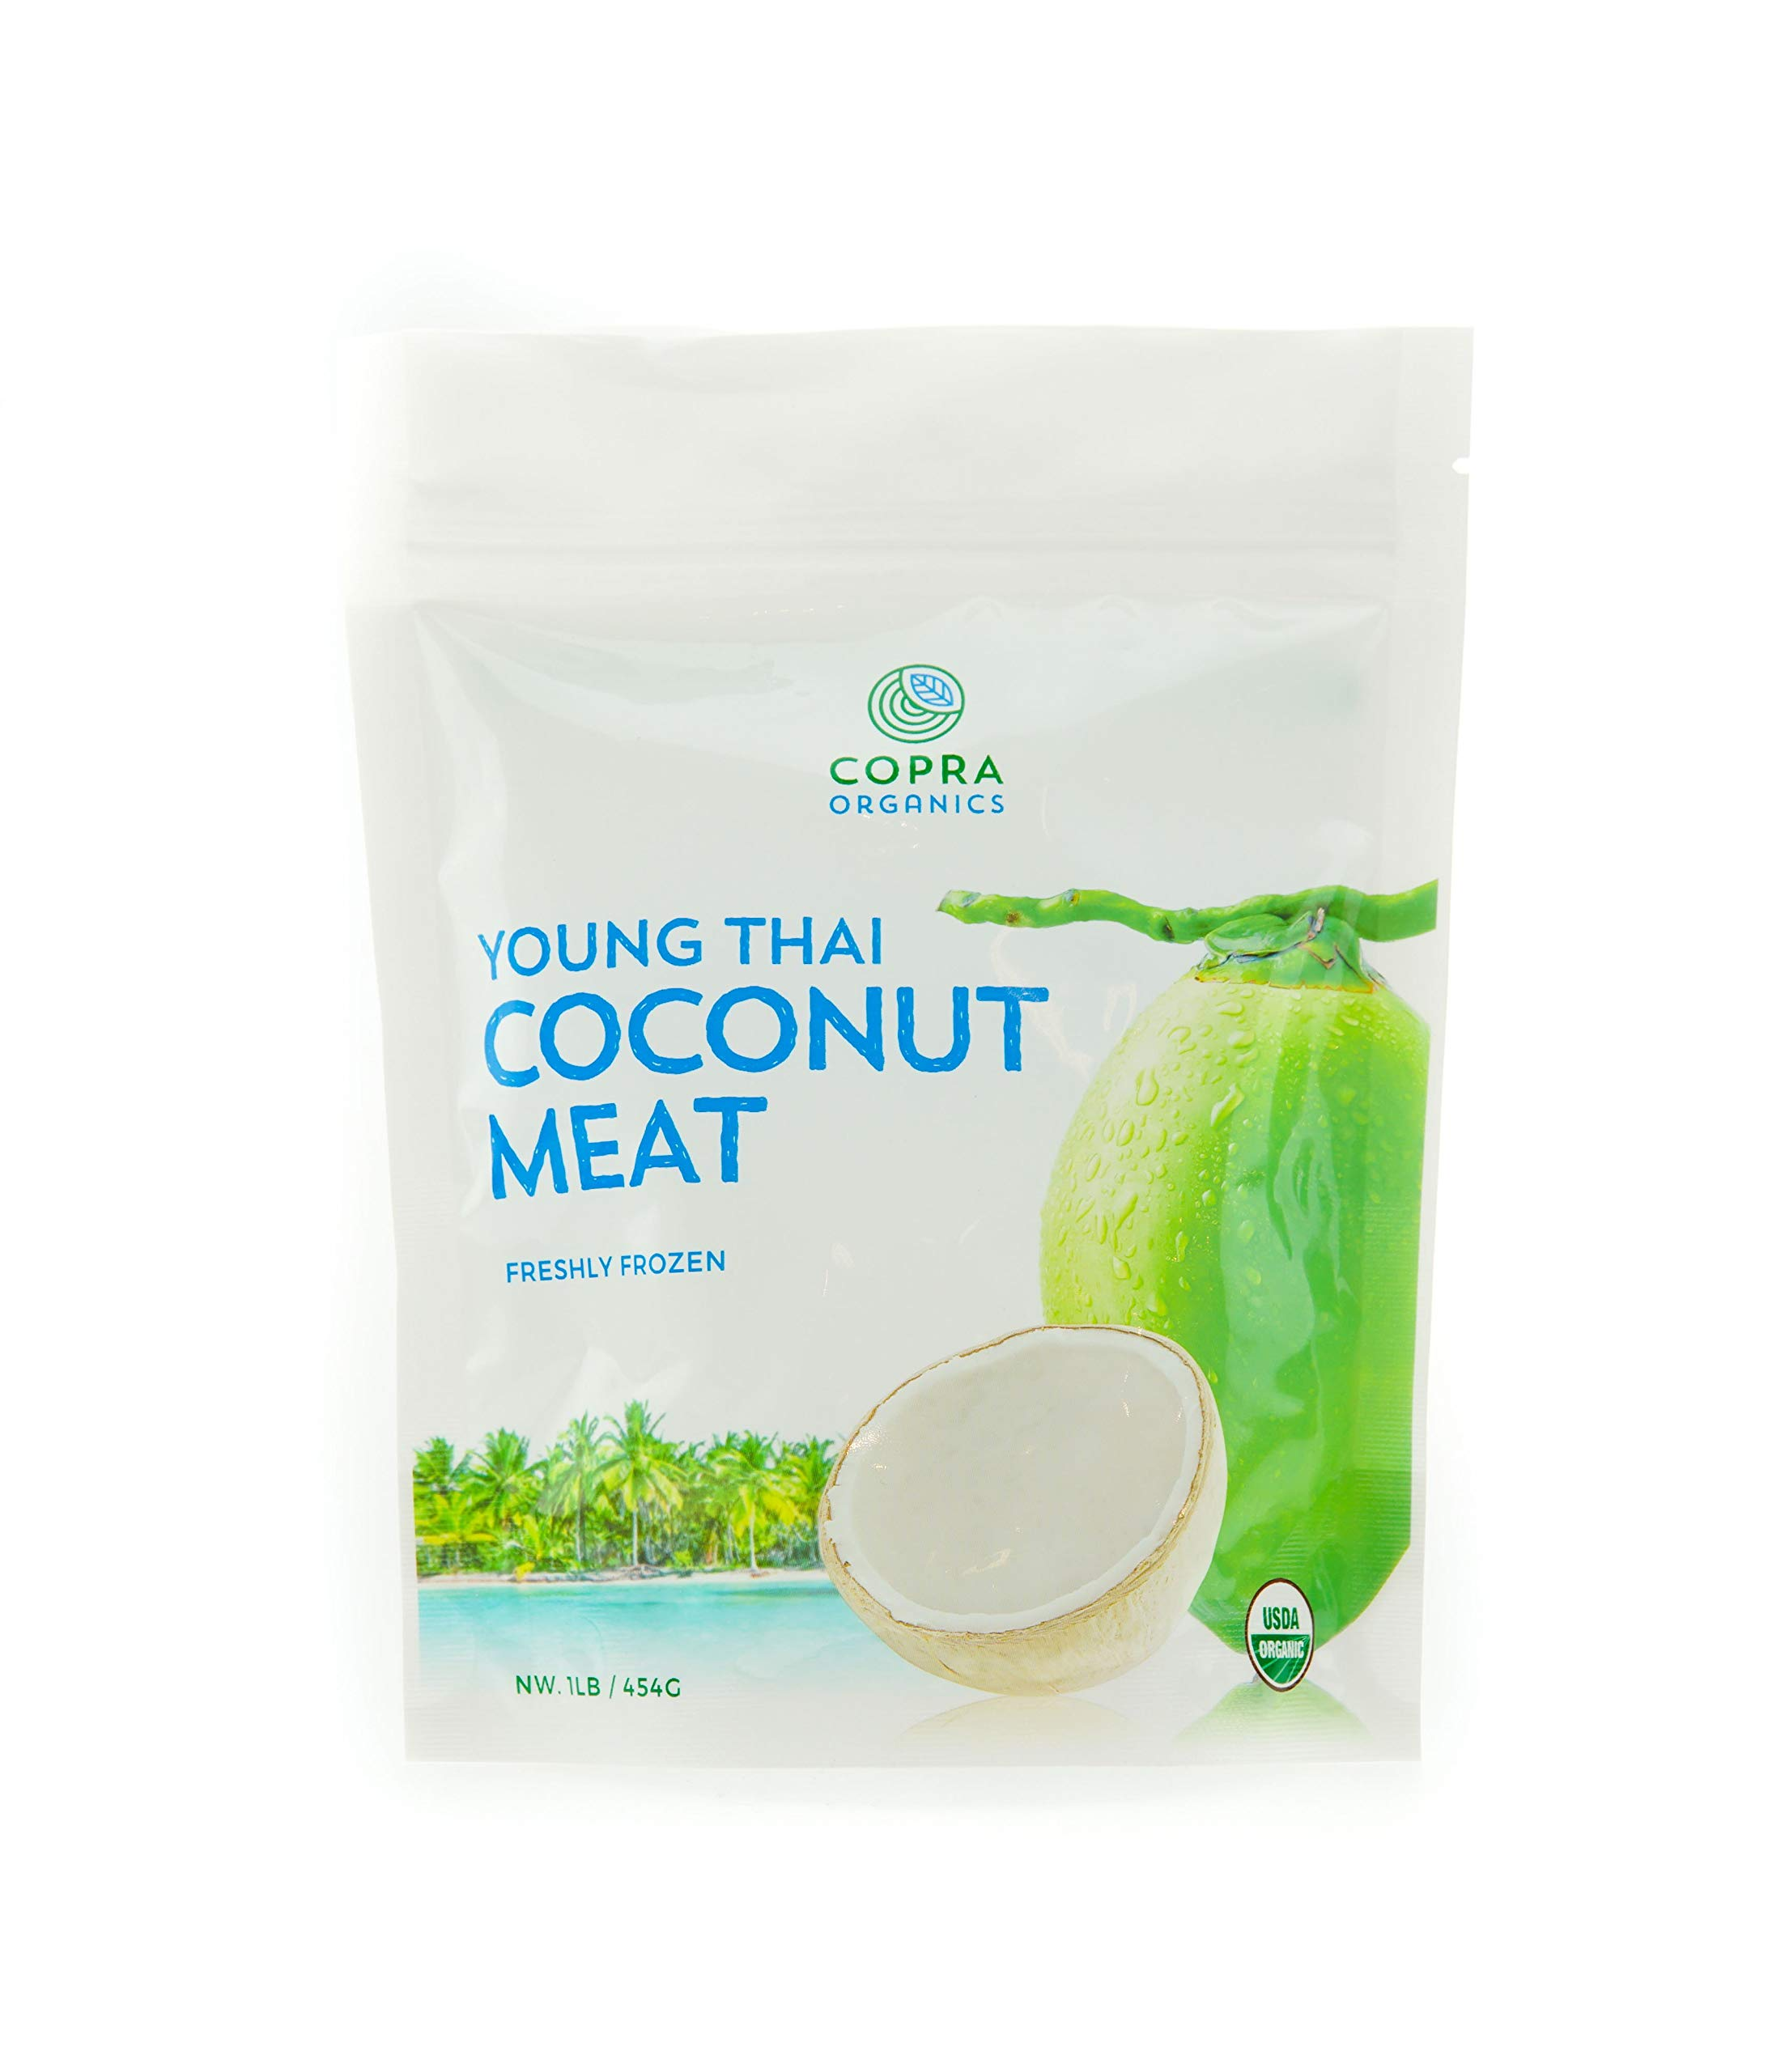 Frozen Young Thai Coconut Meat (1lb)